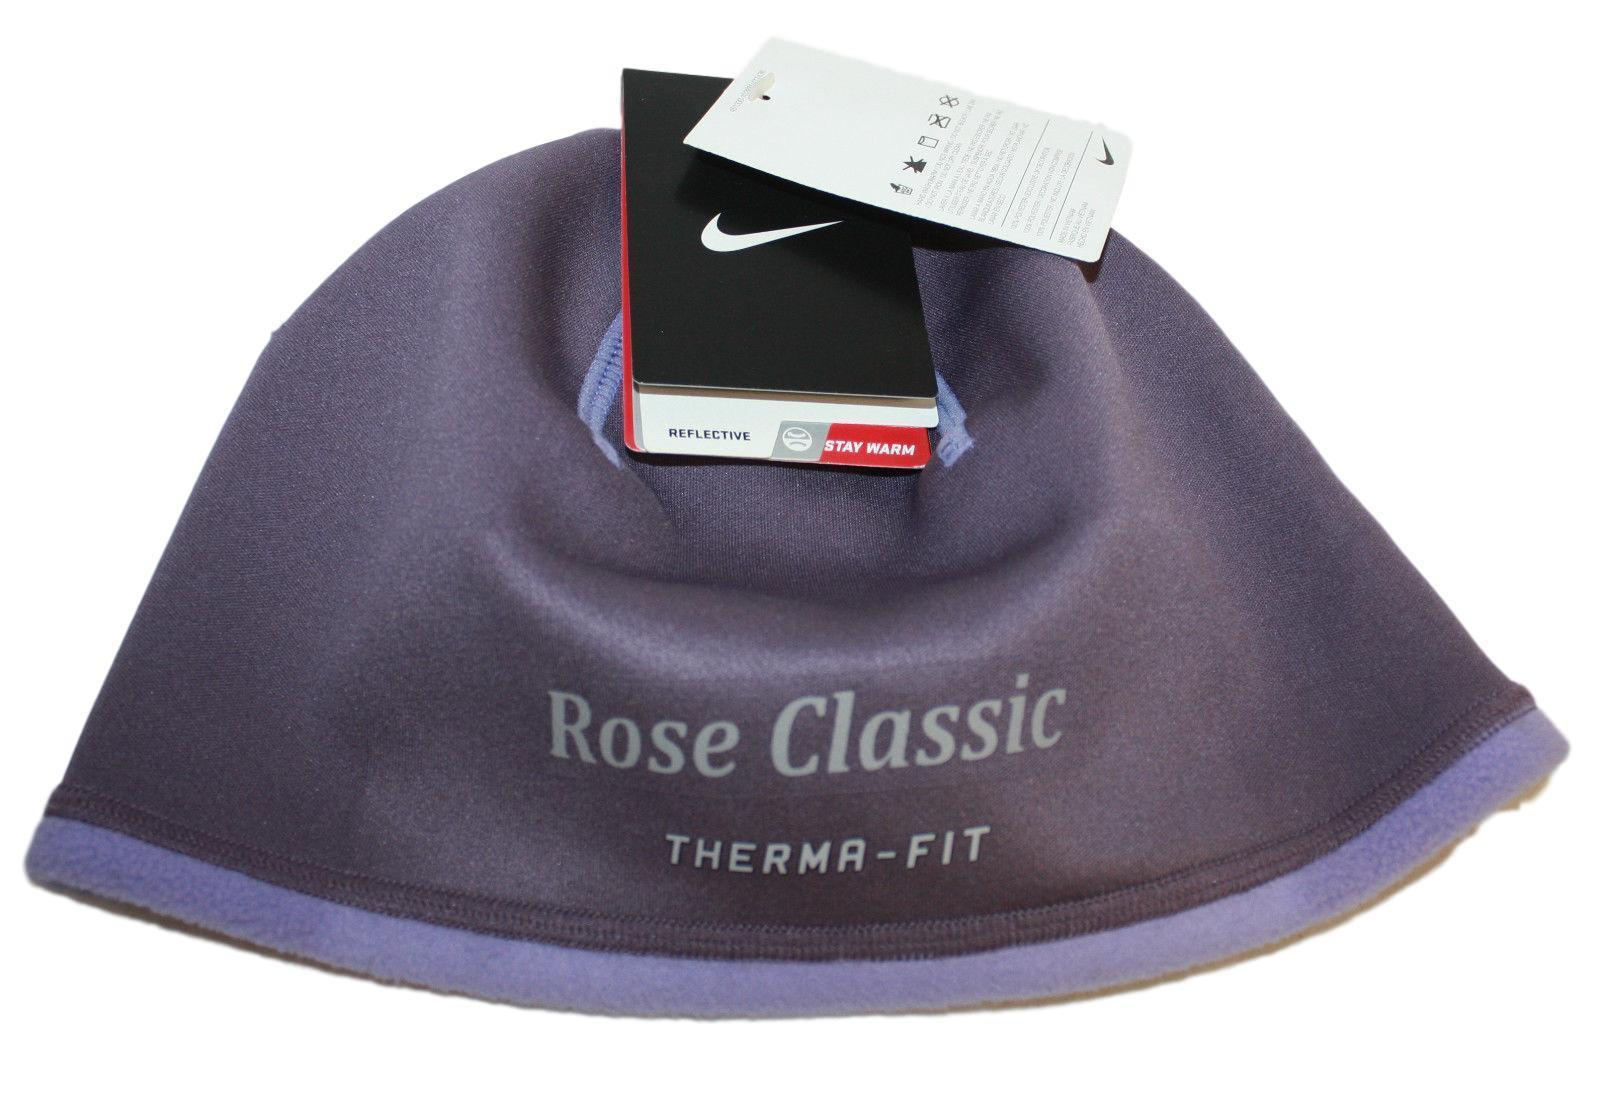 3e08889d1 Details about Women's Nike Rose Classic Ladies Therma-Fit NWT Purple  Running Beanie Cap Hat